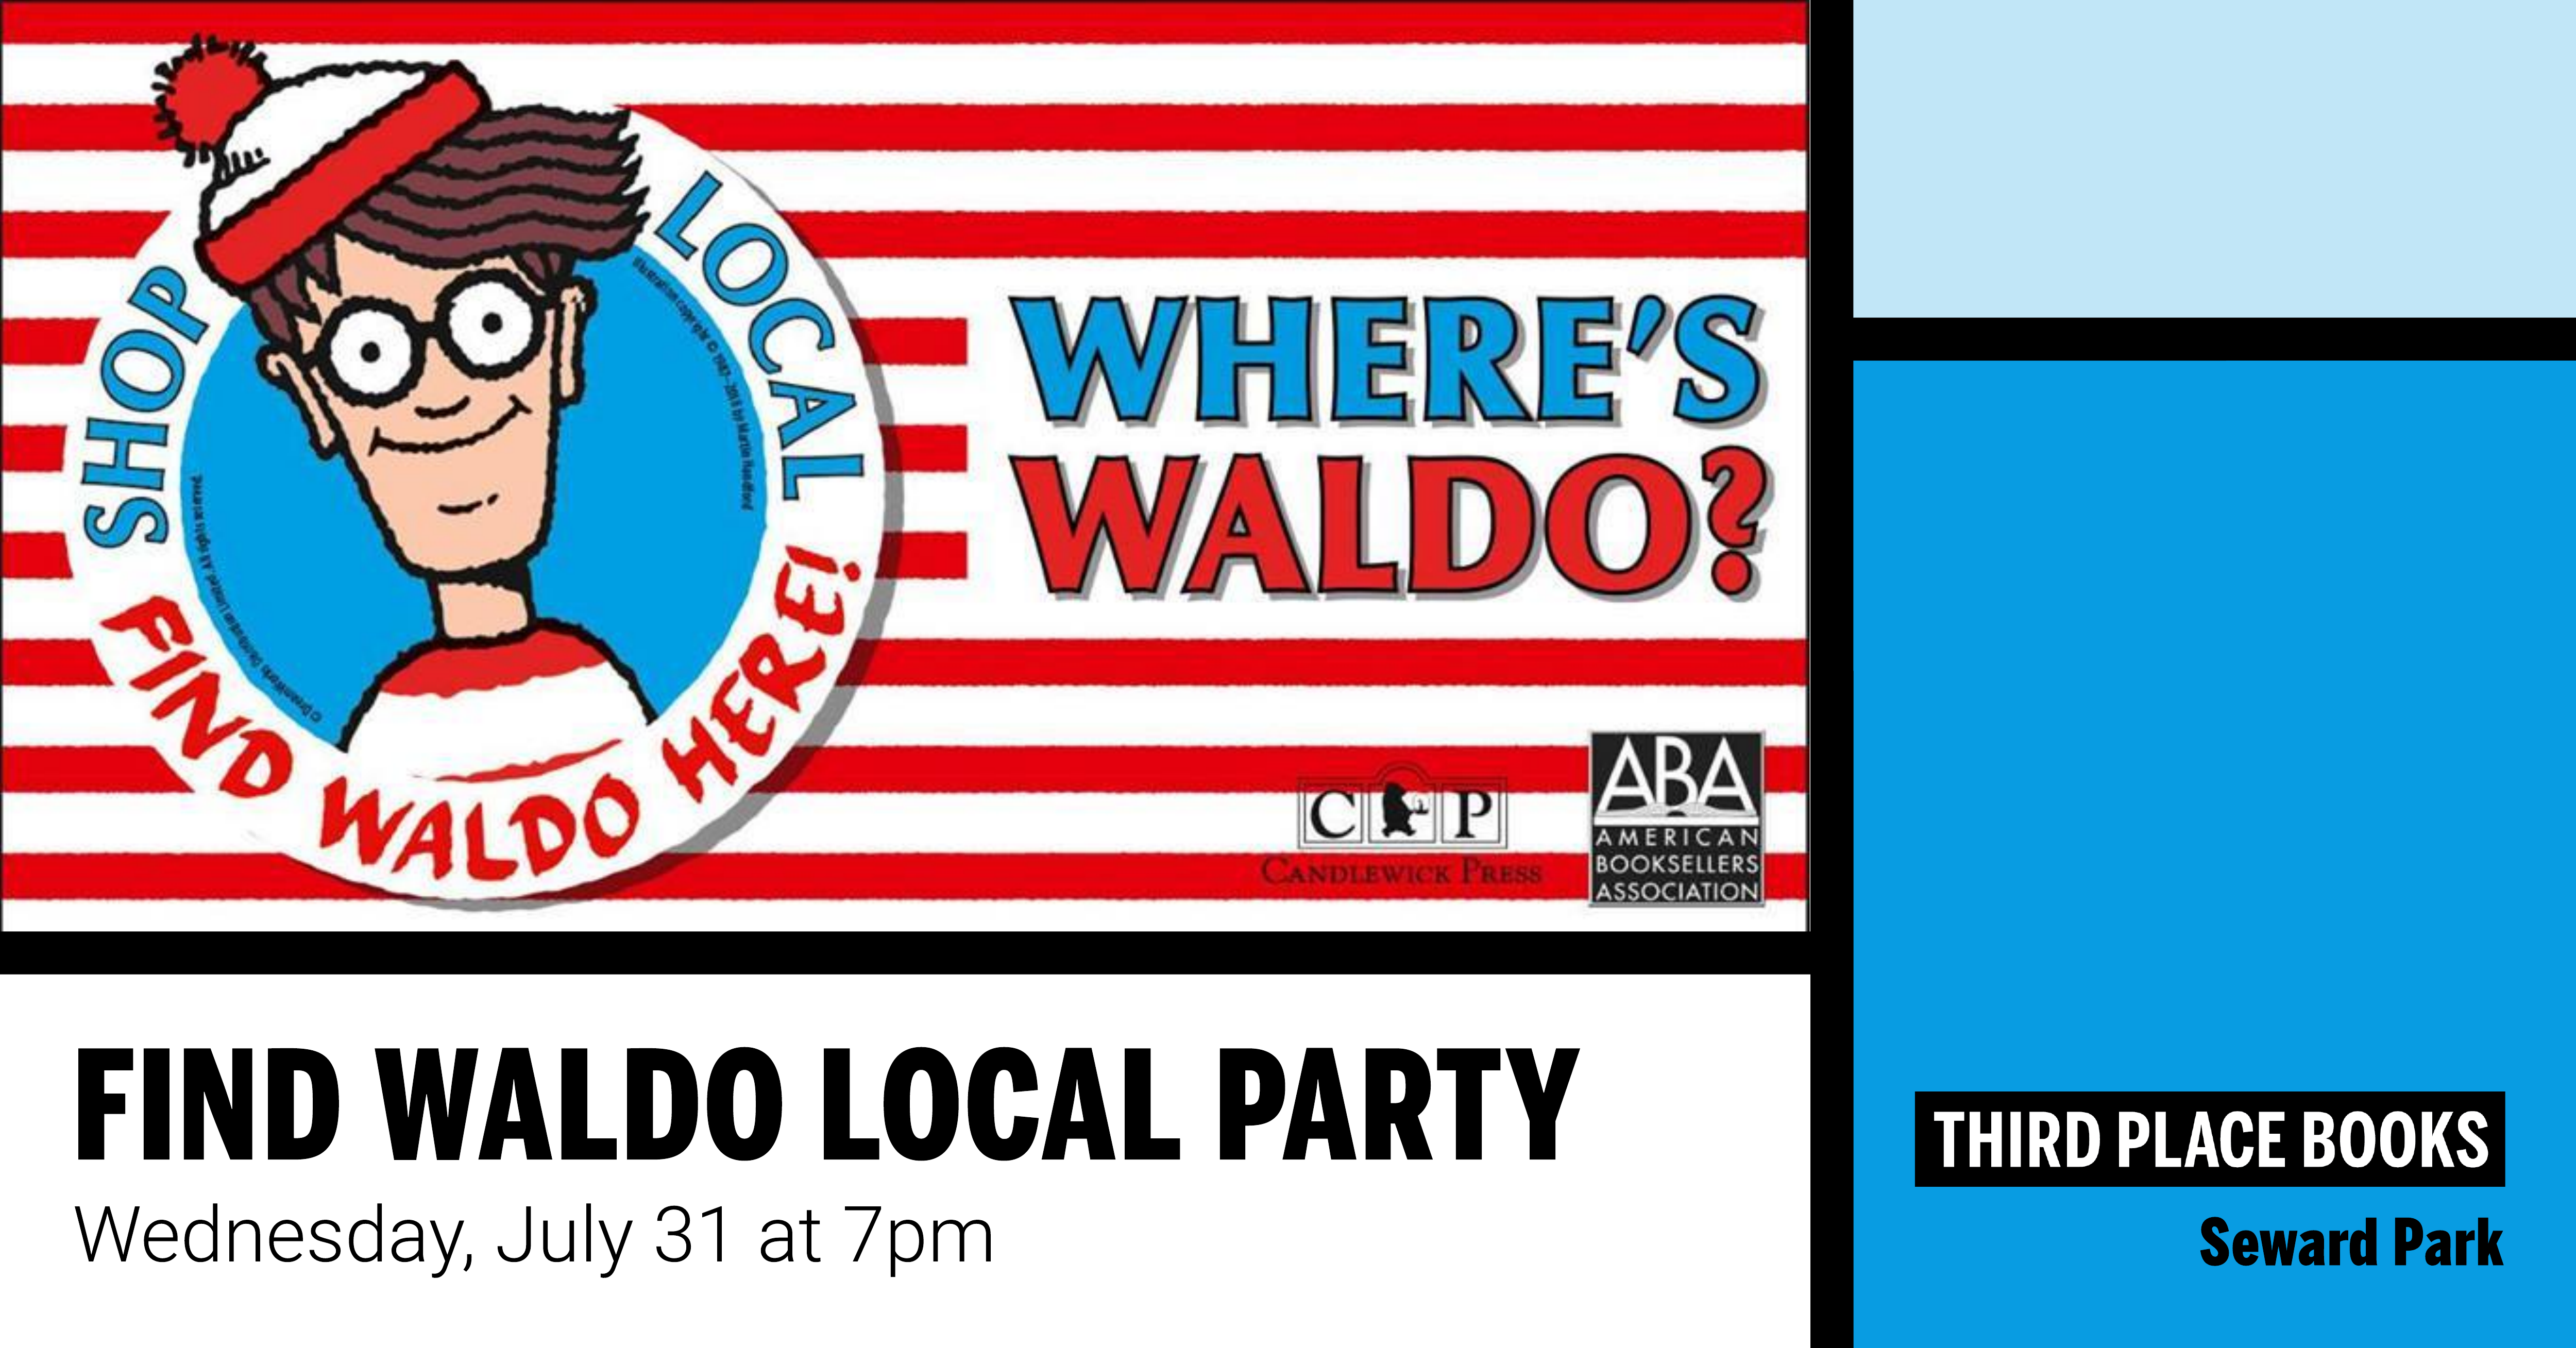 Find Waldo Local Party on Wednesday, July 31 at 7pm